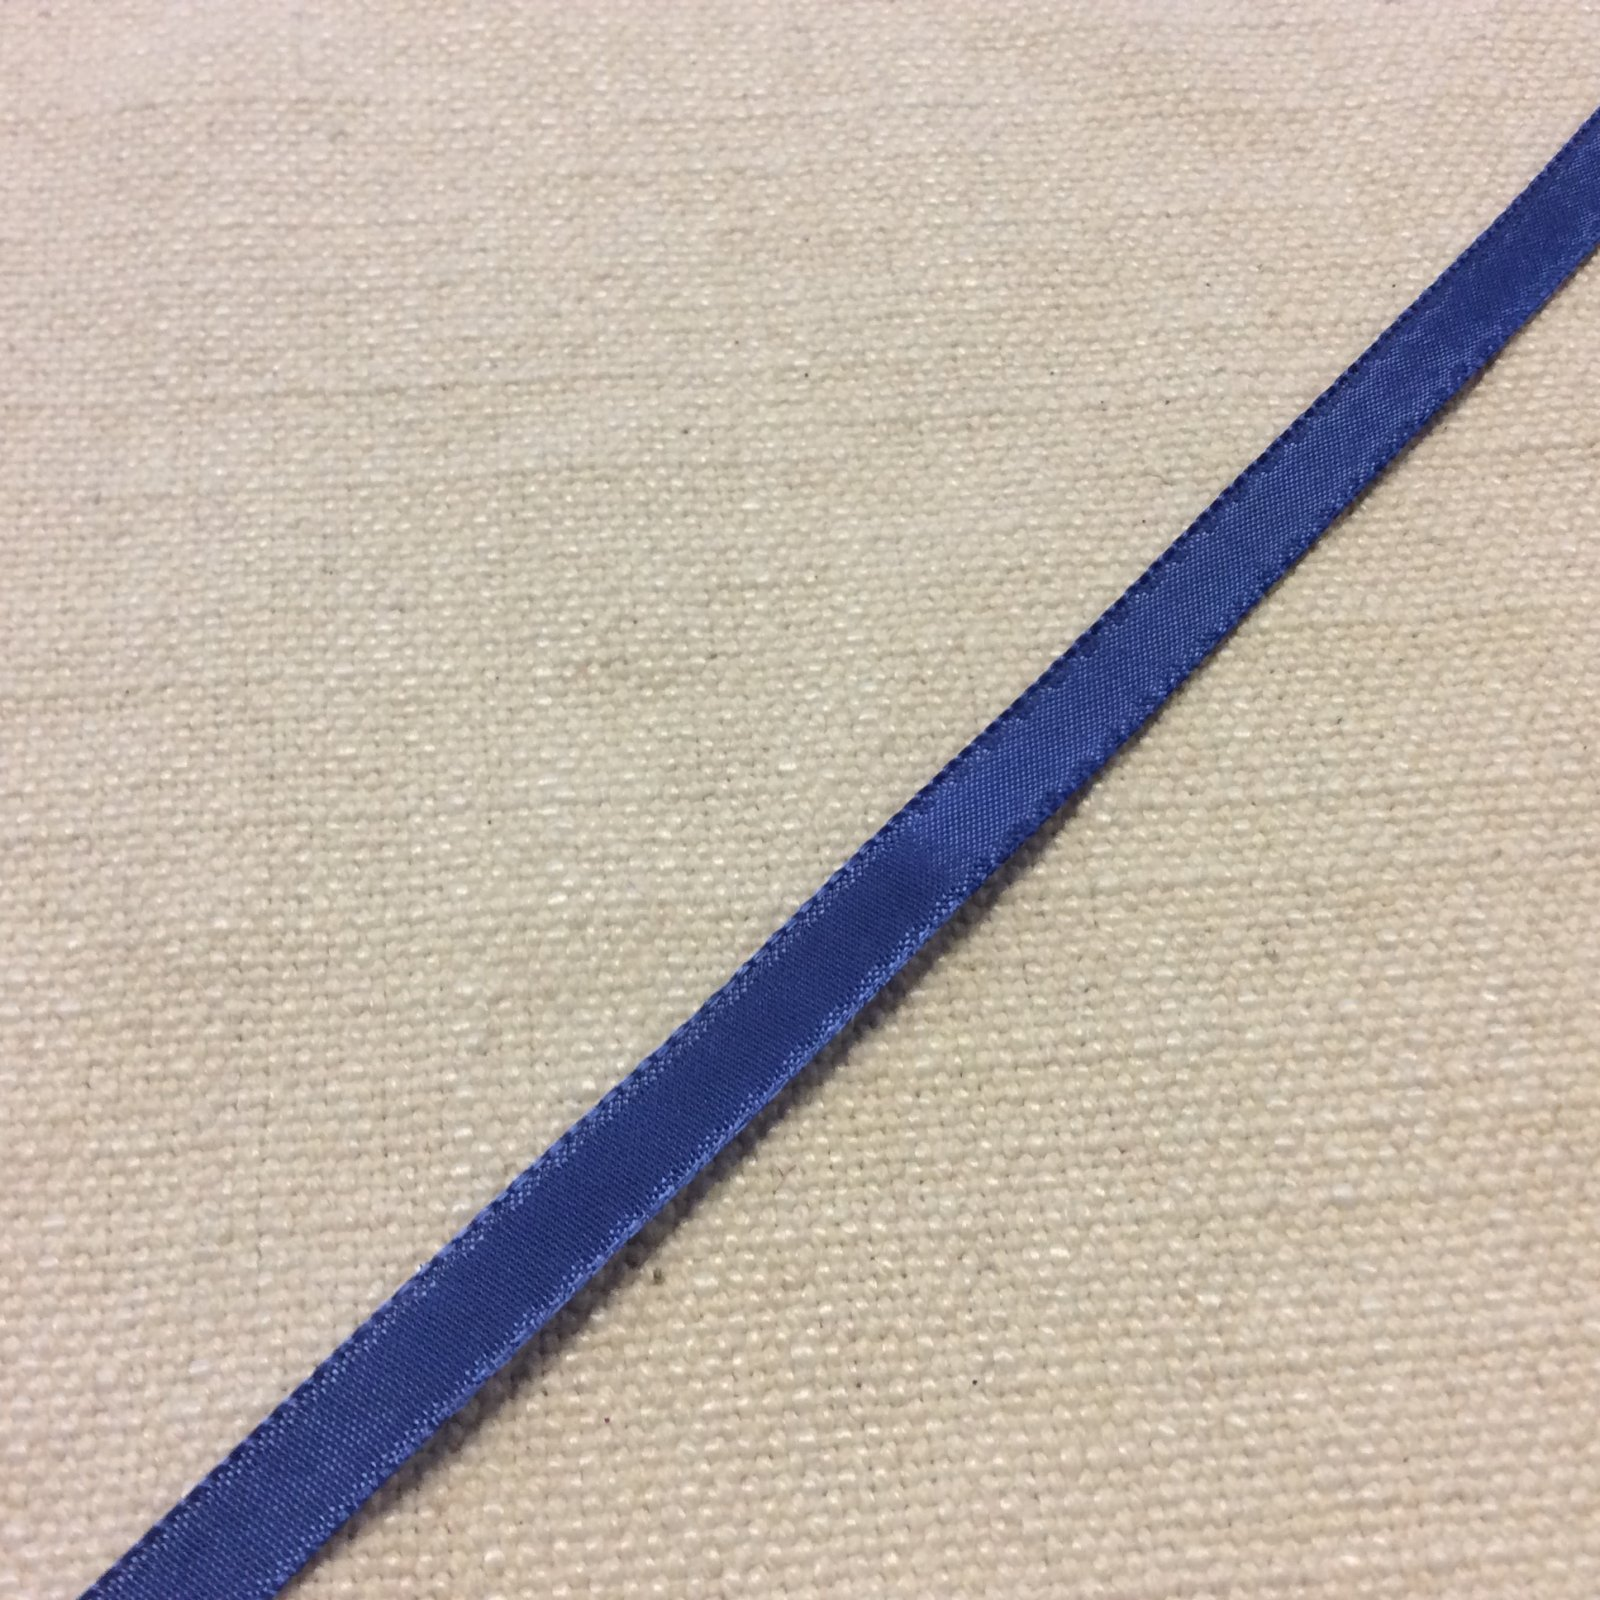 Satin Ribbon 3/8 Royal Blue Trim Ribbon RIB1263